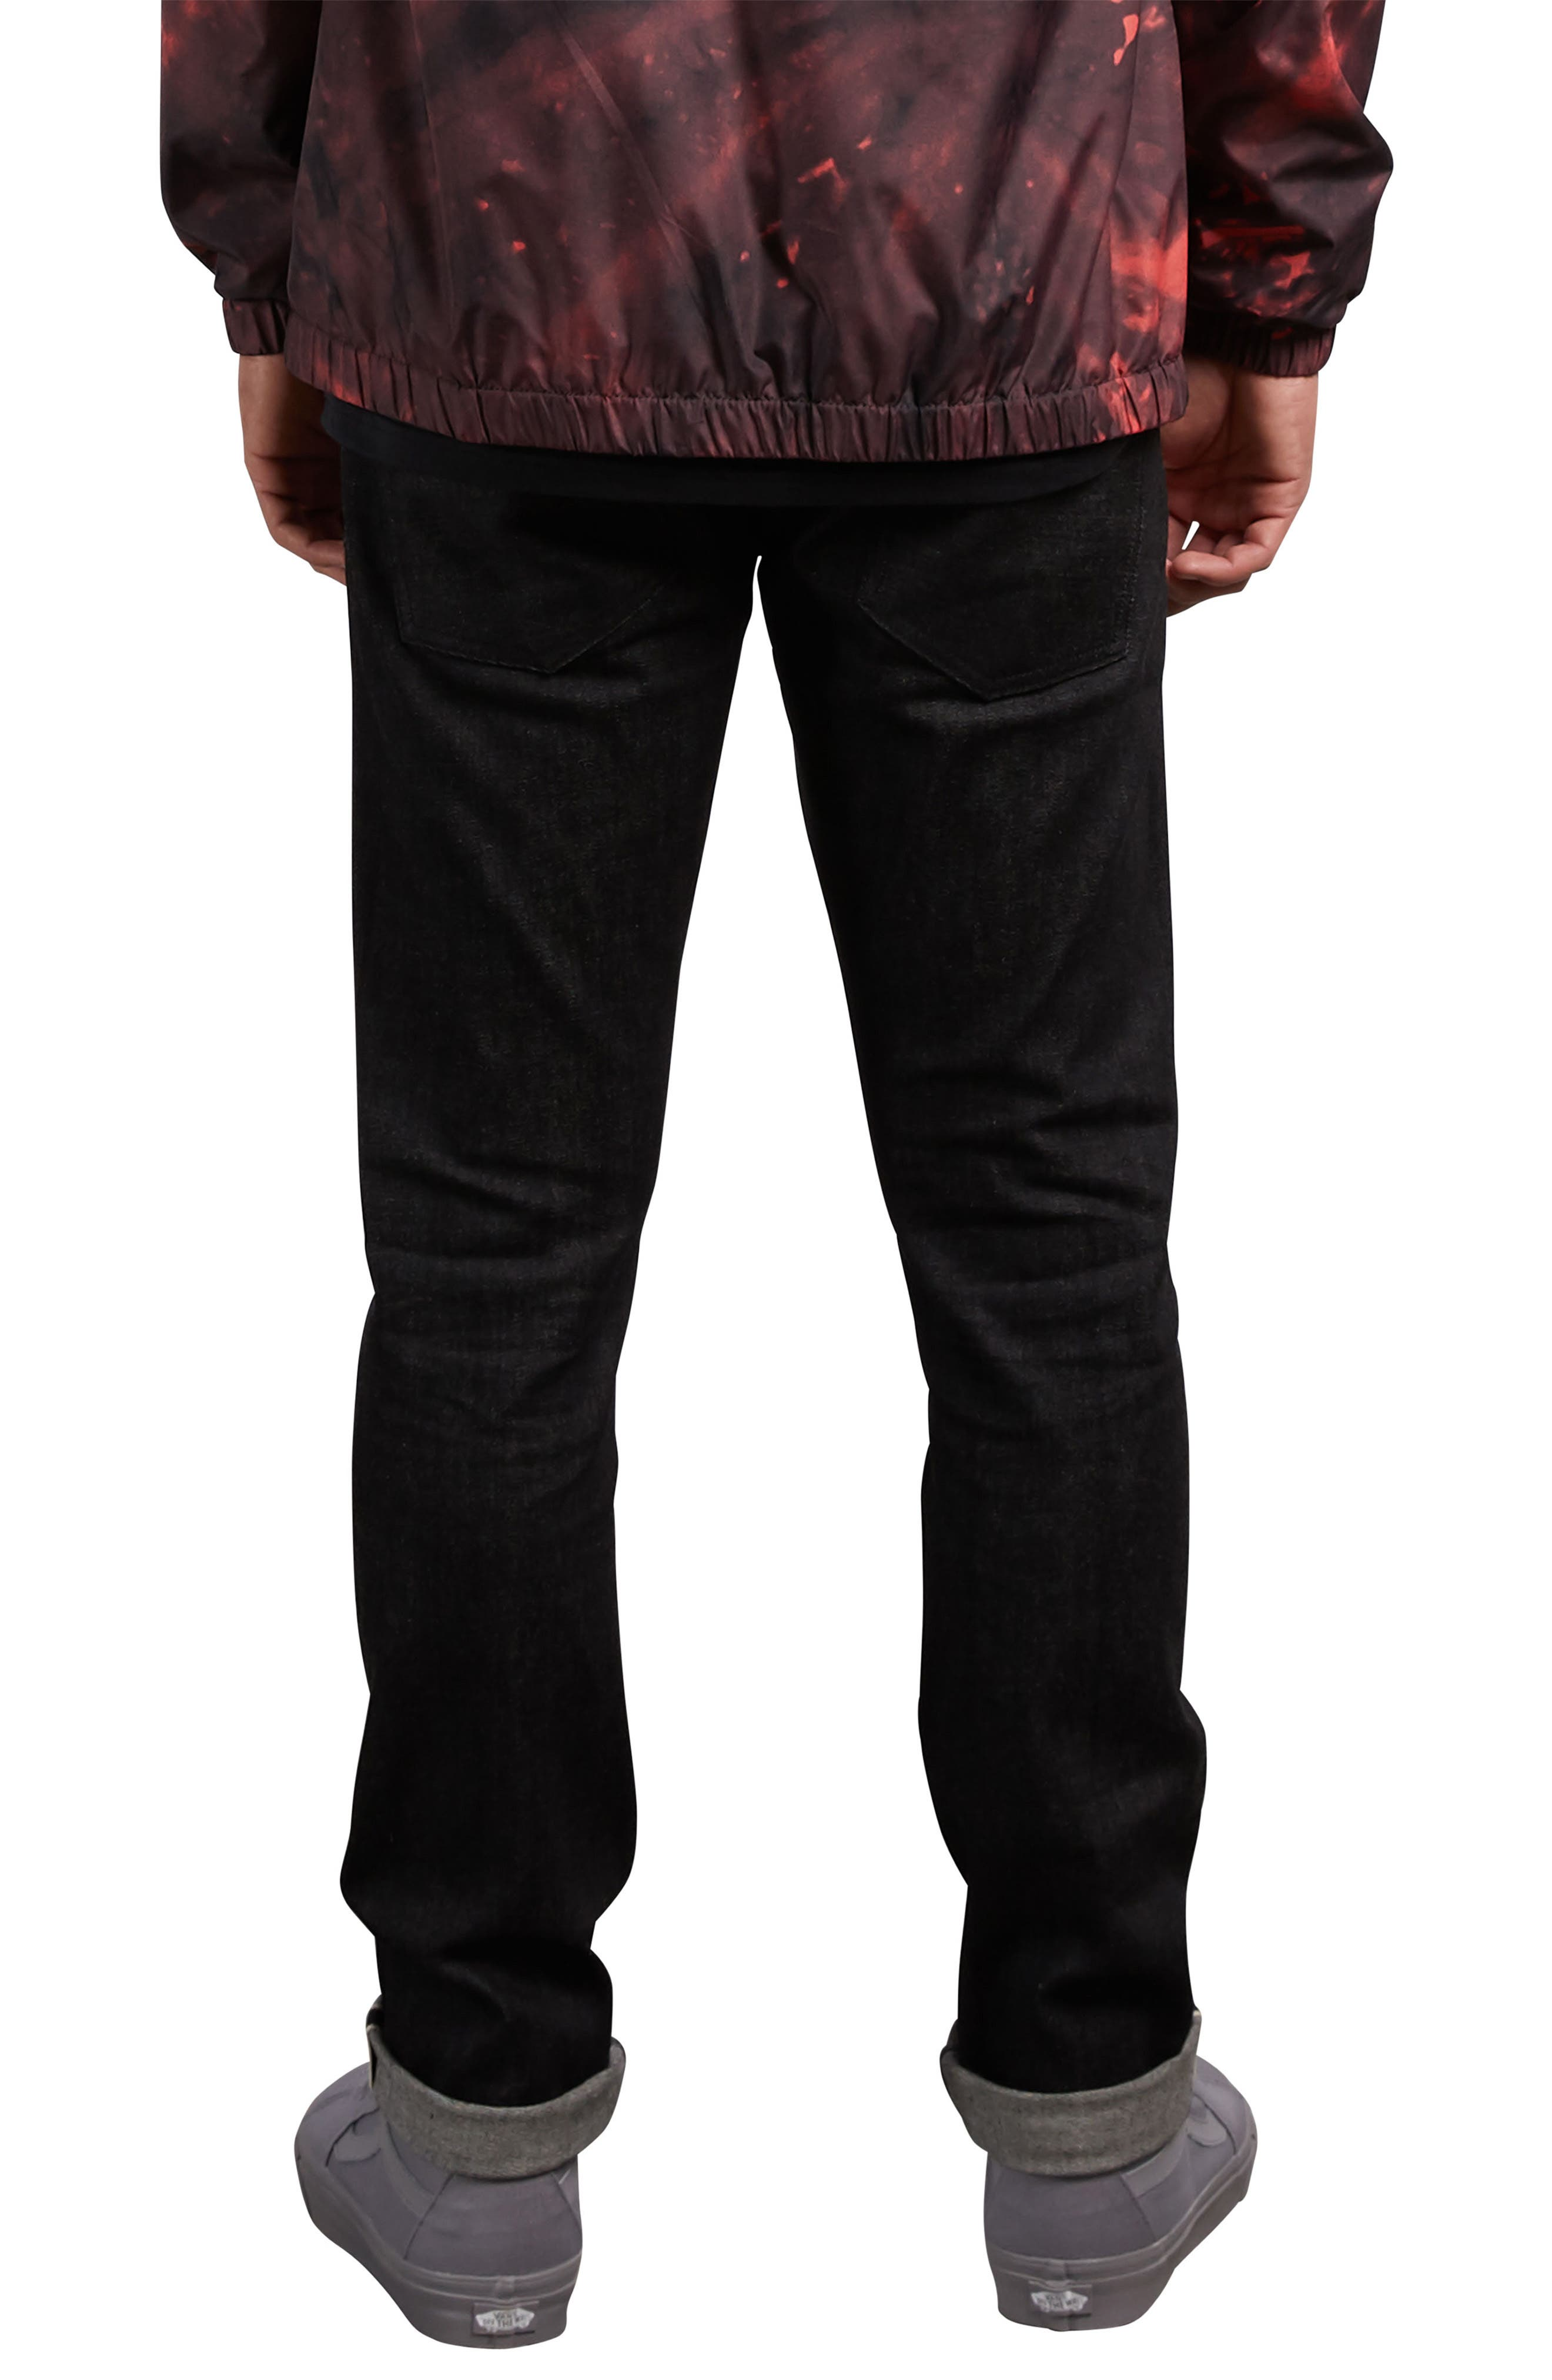 Vorta Slim Fit Jeans,                             Alternate thumbnail 2, color,                             001